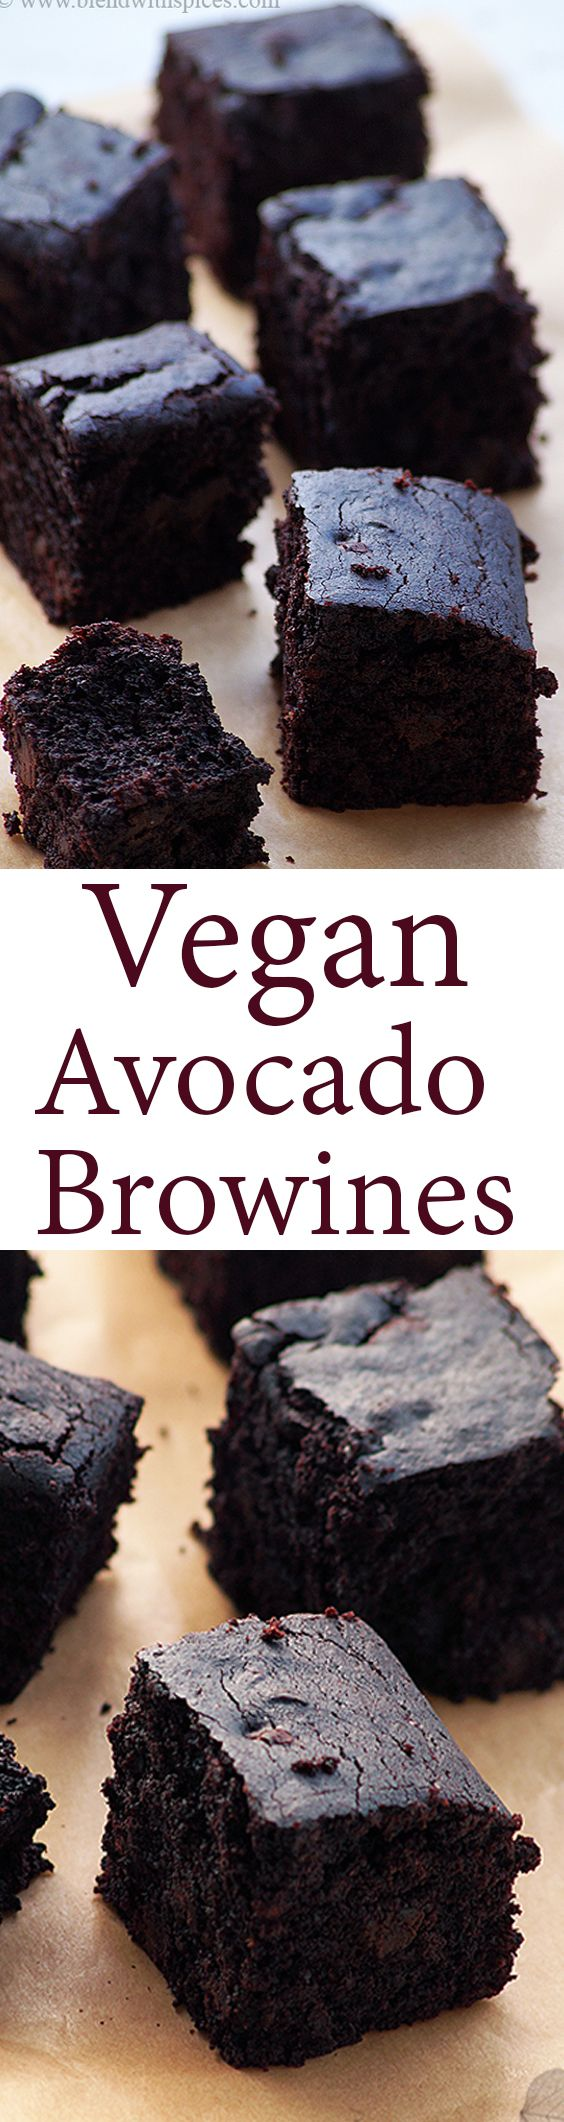 Healthy Vegan Avocado Chocolate Brownies with Whole Wheat Flour! (No Eggs No Butter).. Step by Step Recipe .. blendwithspices.com